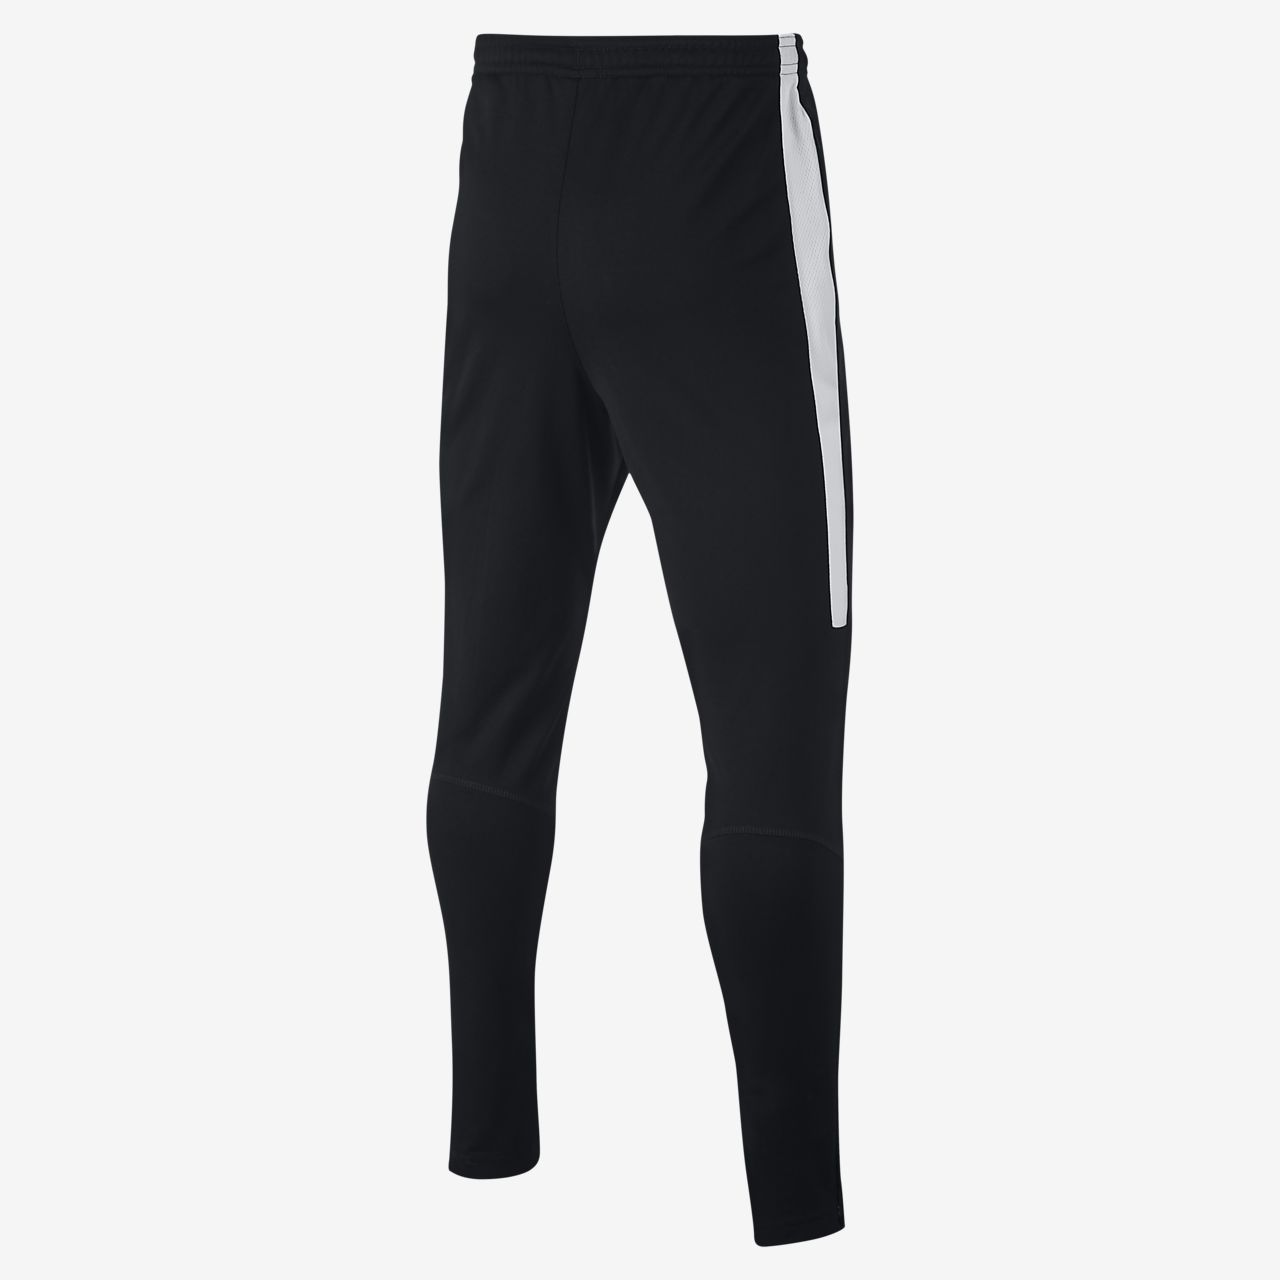 ae2124c3600 Nike Dri-FIT Academy Big Kids' Soccer Pants